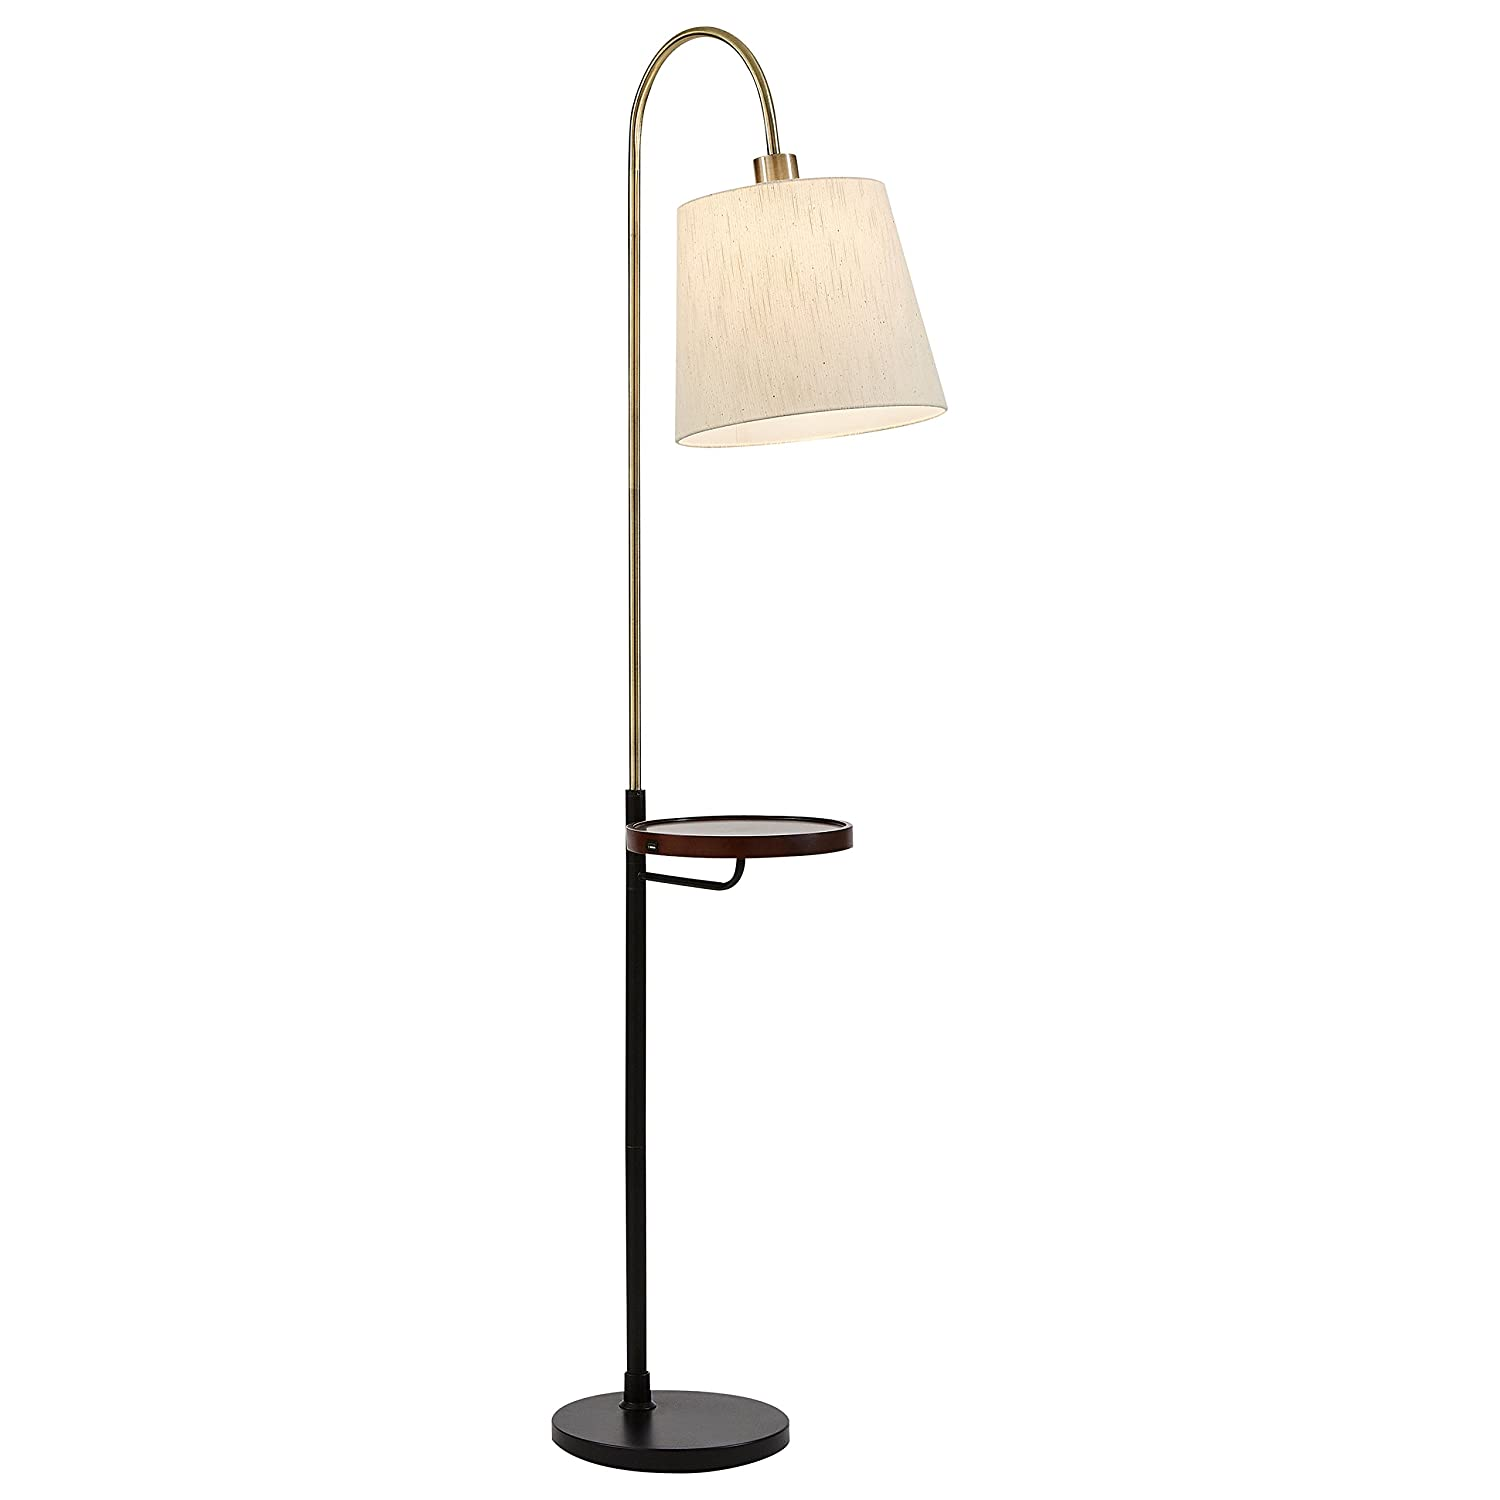 Floor lamps amazon lighting ceiling fans lamps shades most wished for parisarafo Gallery